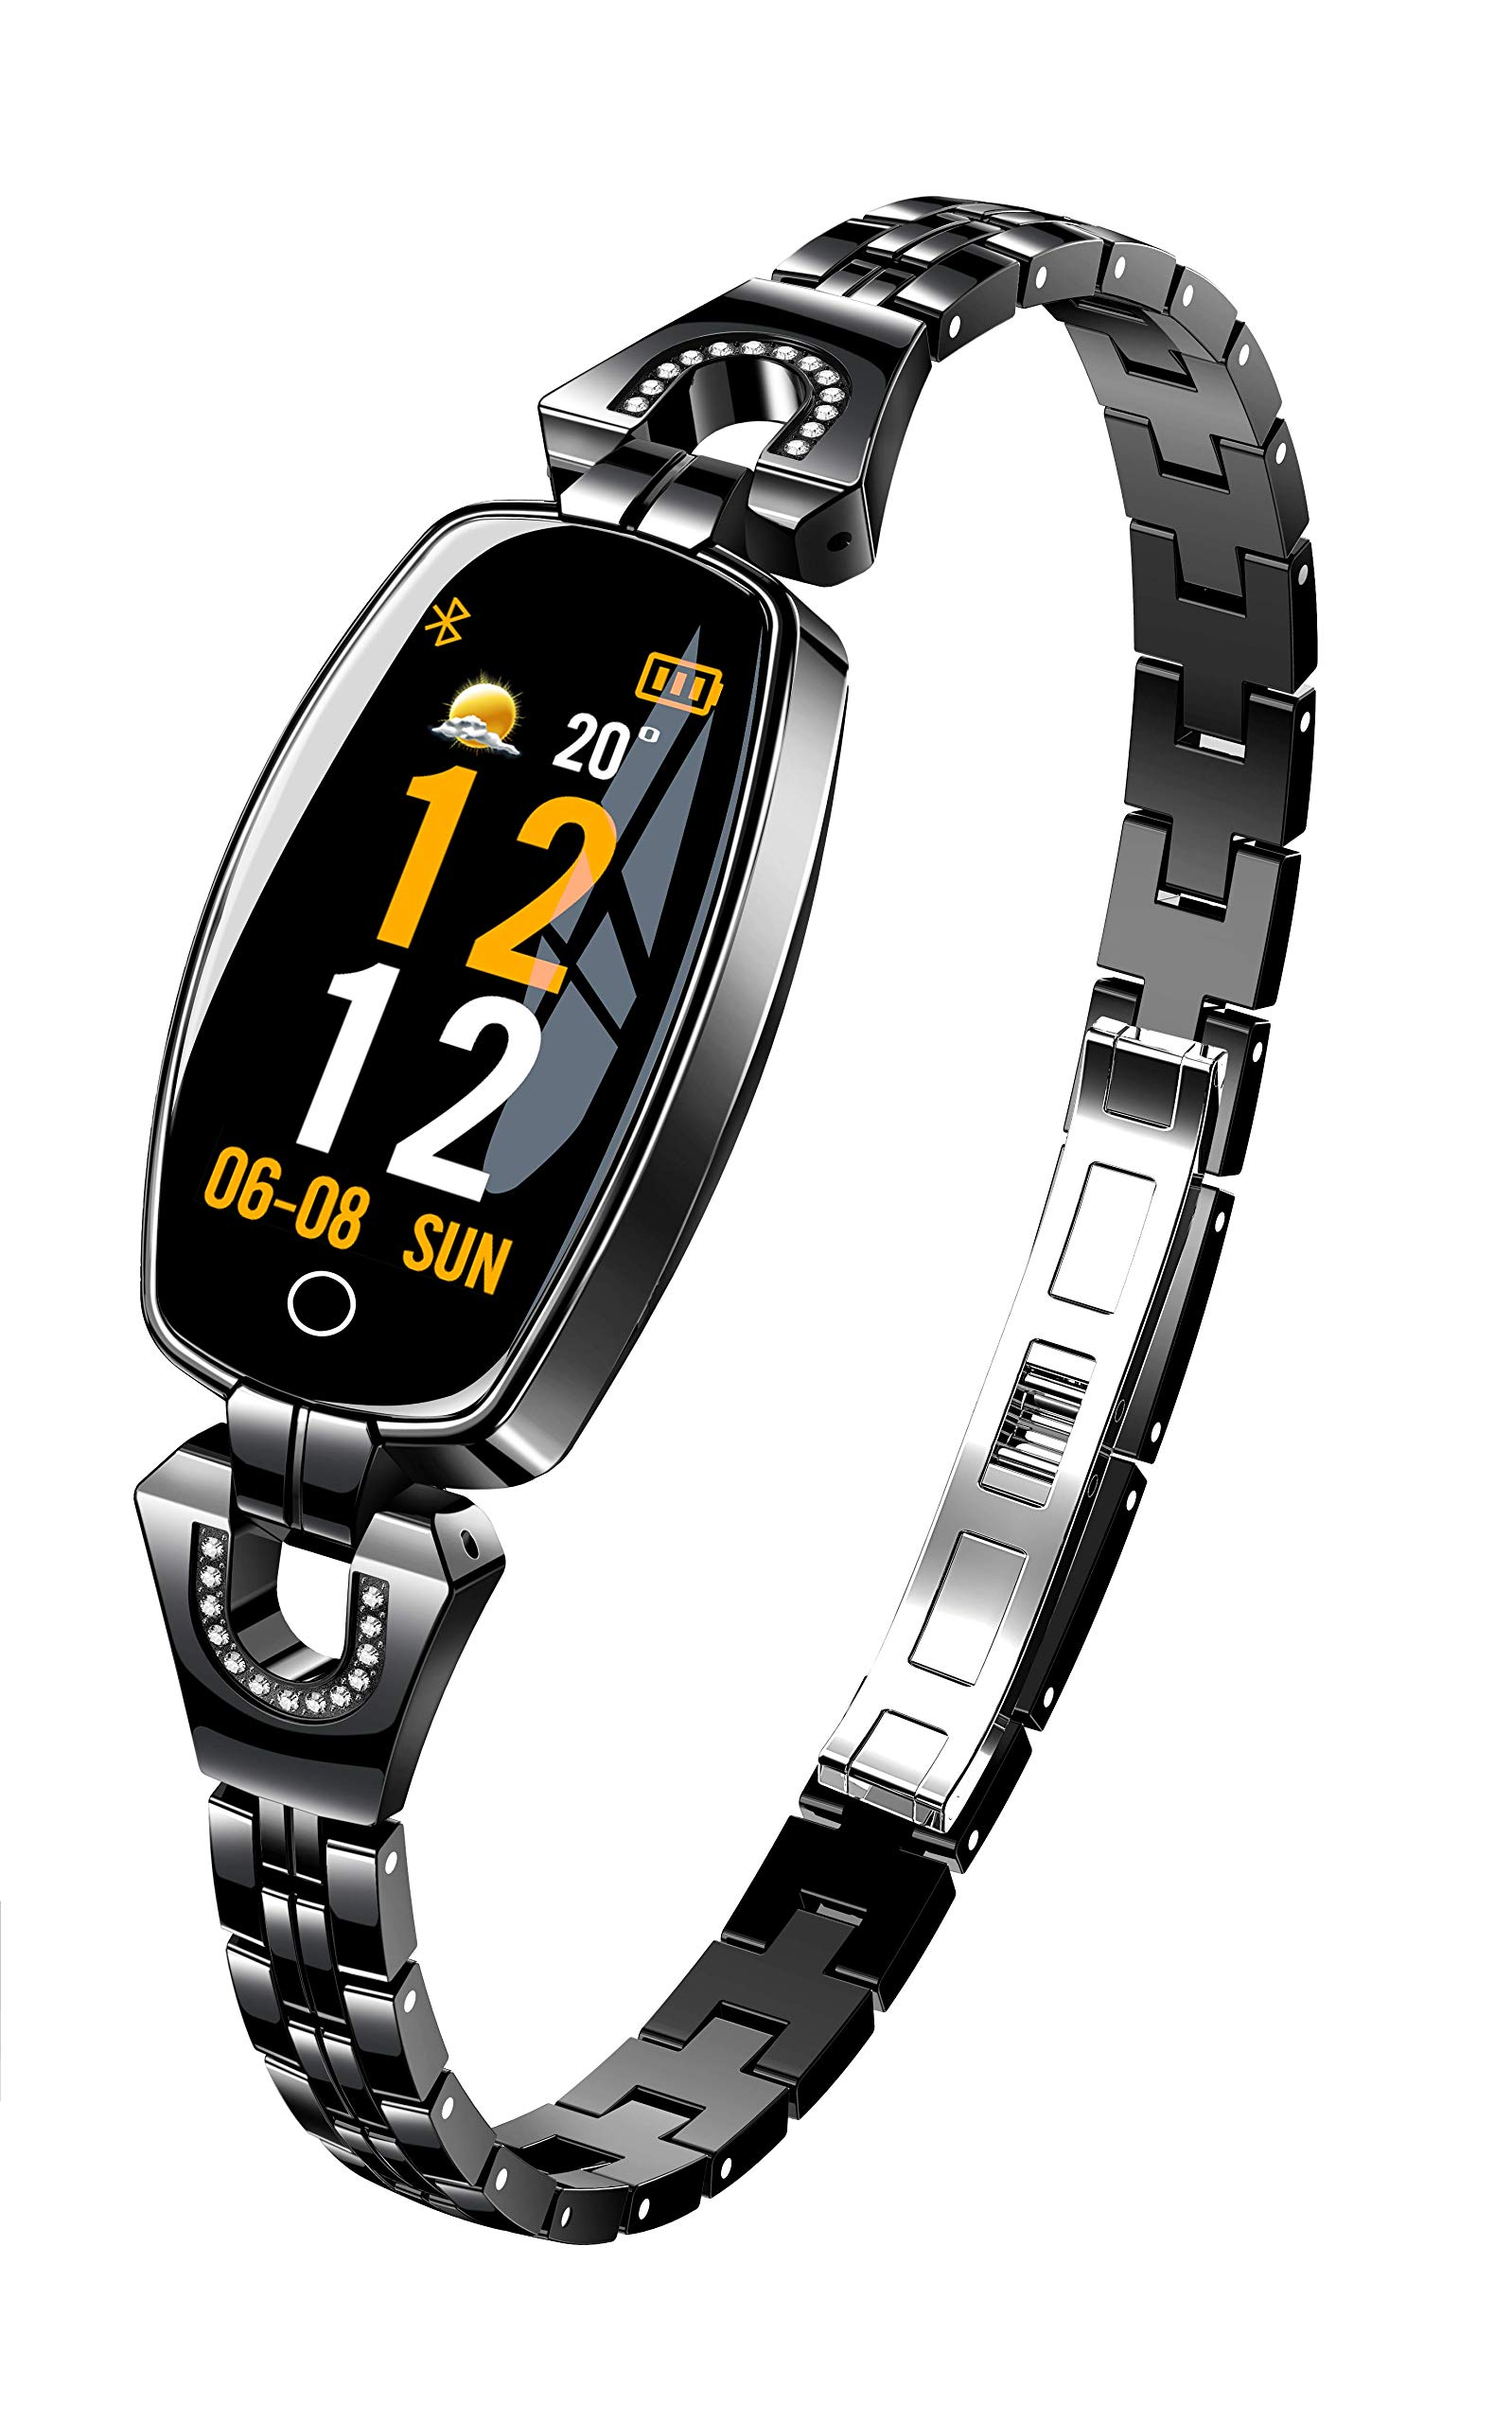 Byoung Smart Bracelet Fitness Tracker,IP68 Waterproof Activity Tracker for Women 1.3 inch Smart Watch with Blood Pressure/Heart Rate Monitor/Calorie Counter/Sleep Monitor for iOS Android Samsung